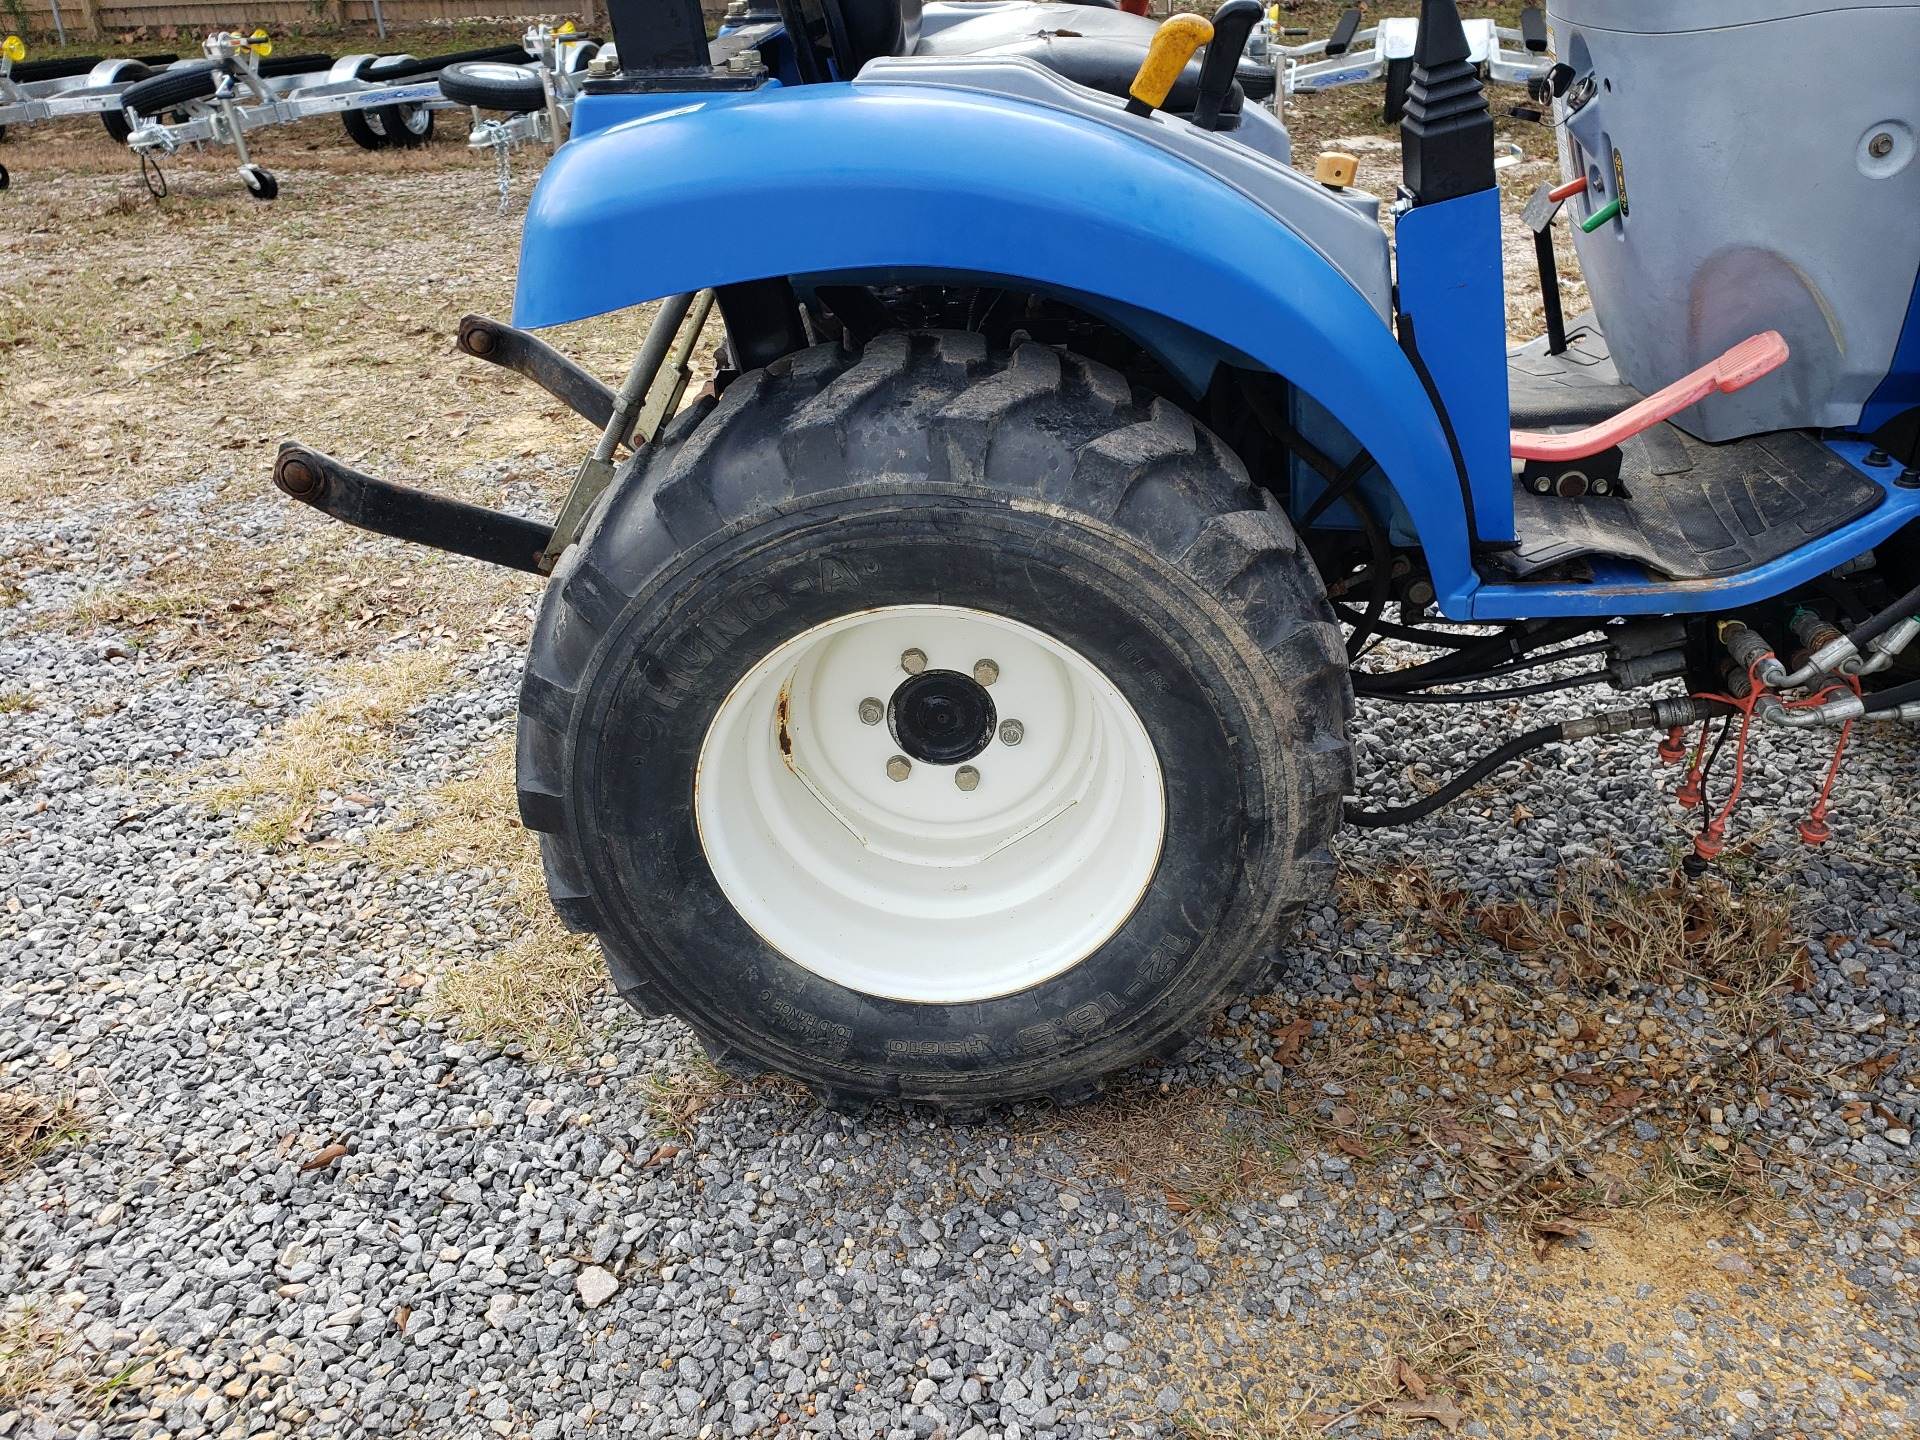 2012 New Holland Agriculture Boomer Compact 20 in Saucier, Mississippi - Photo 5